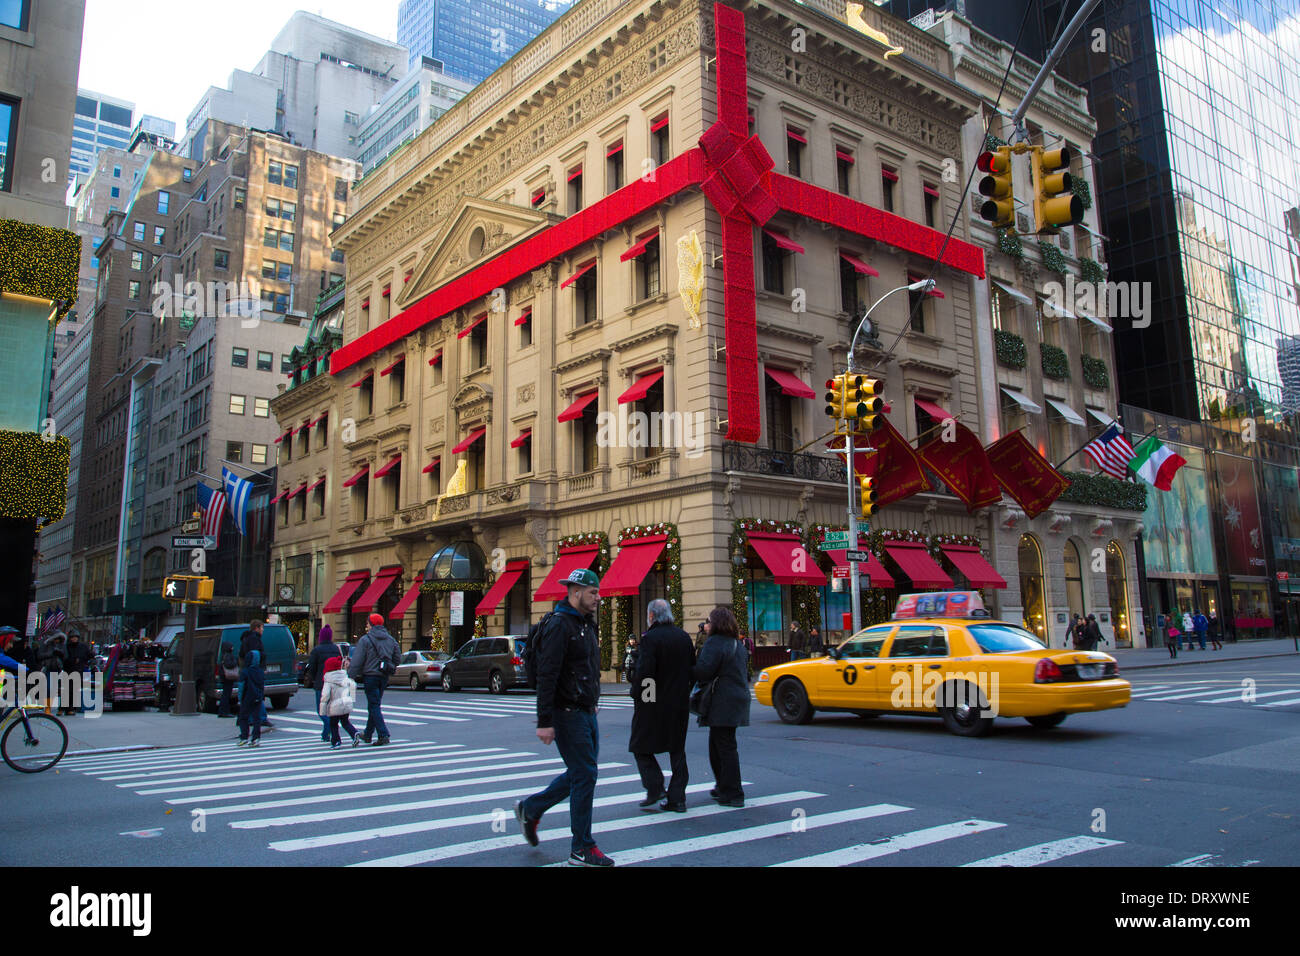 Cartier Store Front, 5th Avenue, NYC - Stock Image